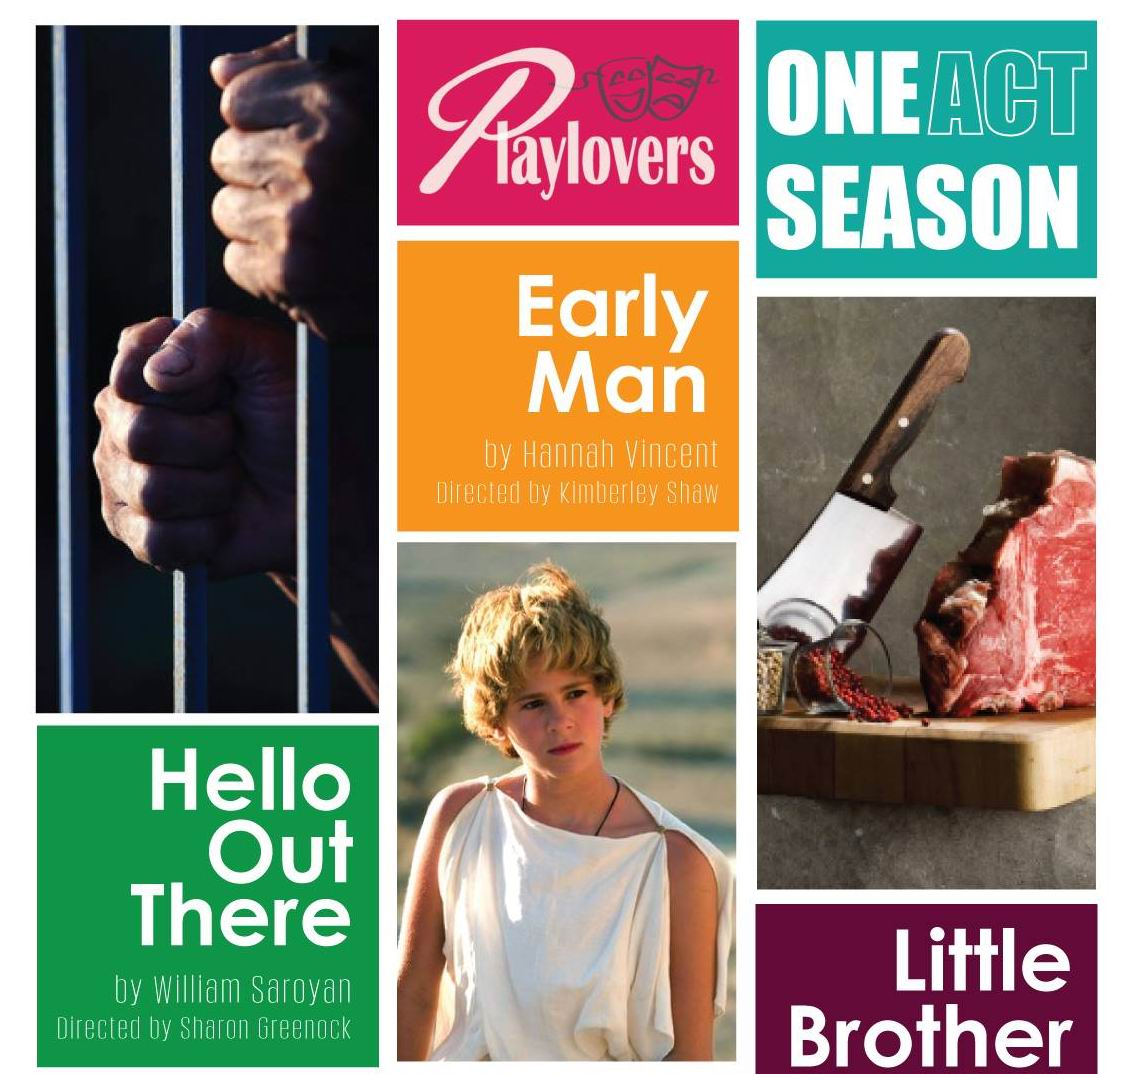 Playlovers all set for One Act Season at Subiaco Arts Centre